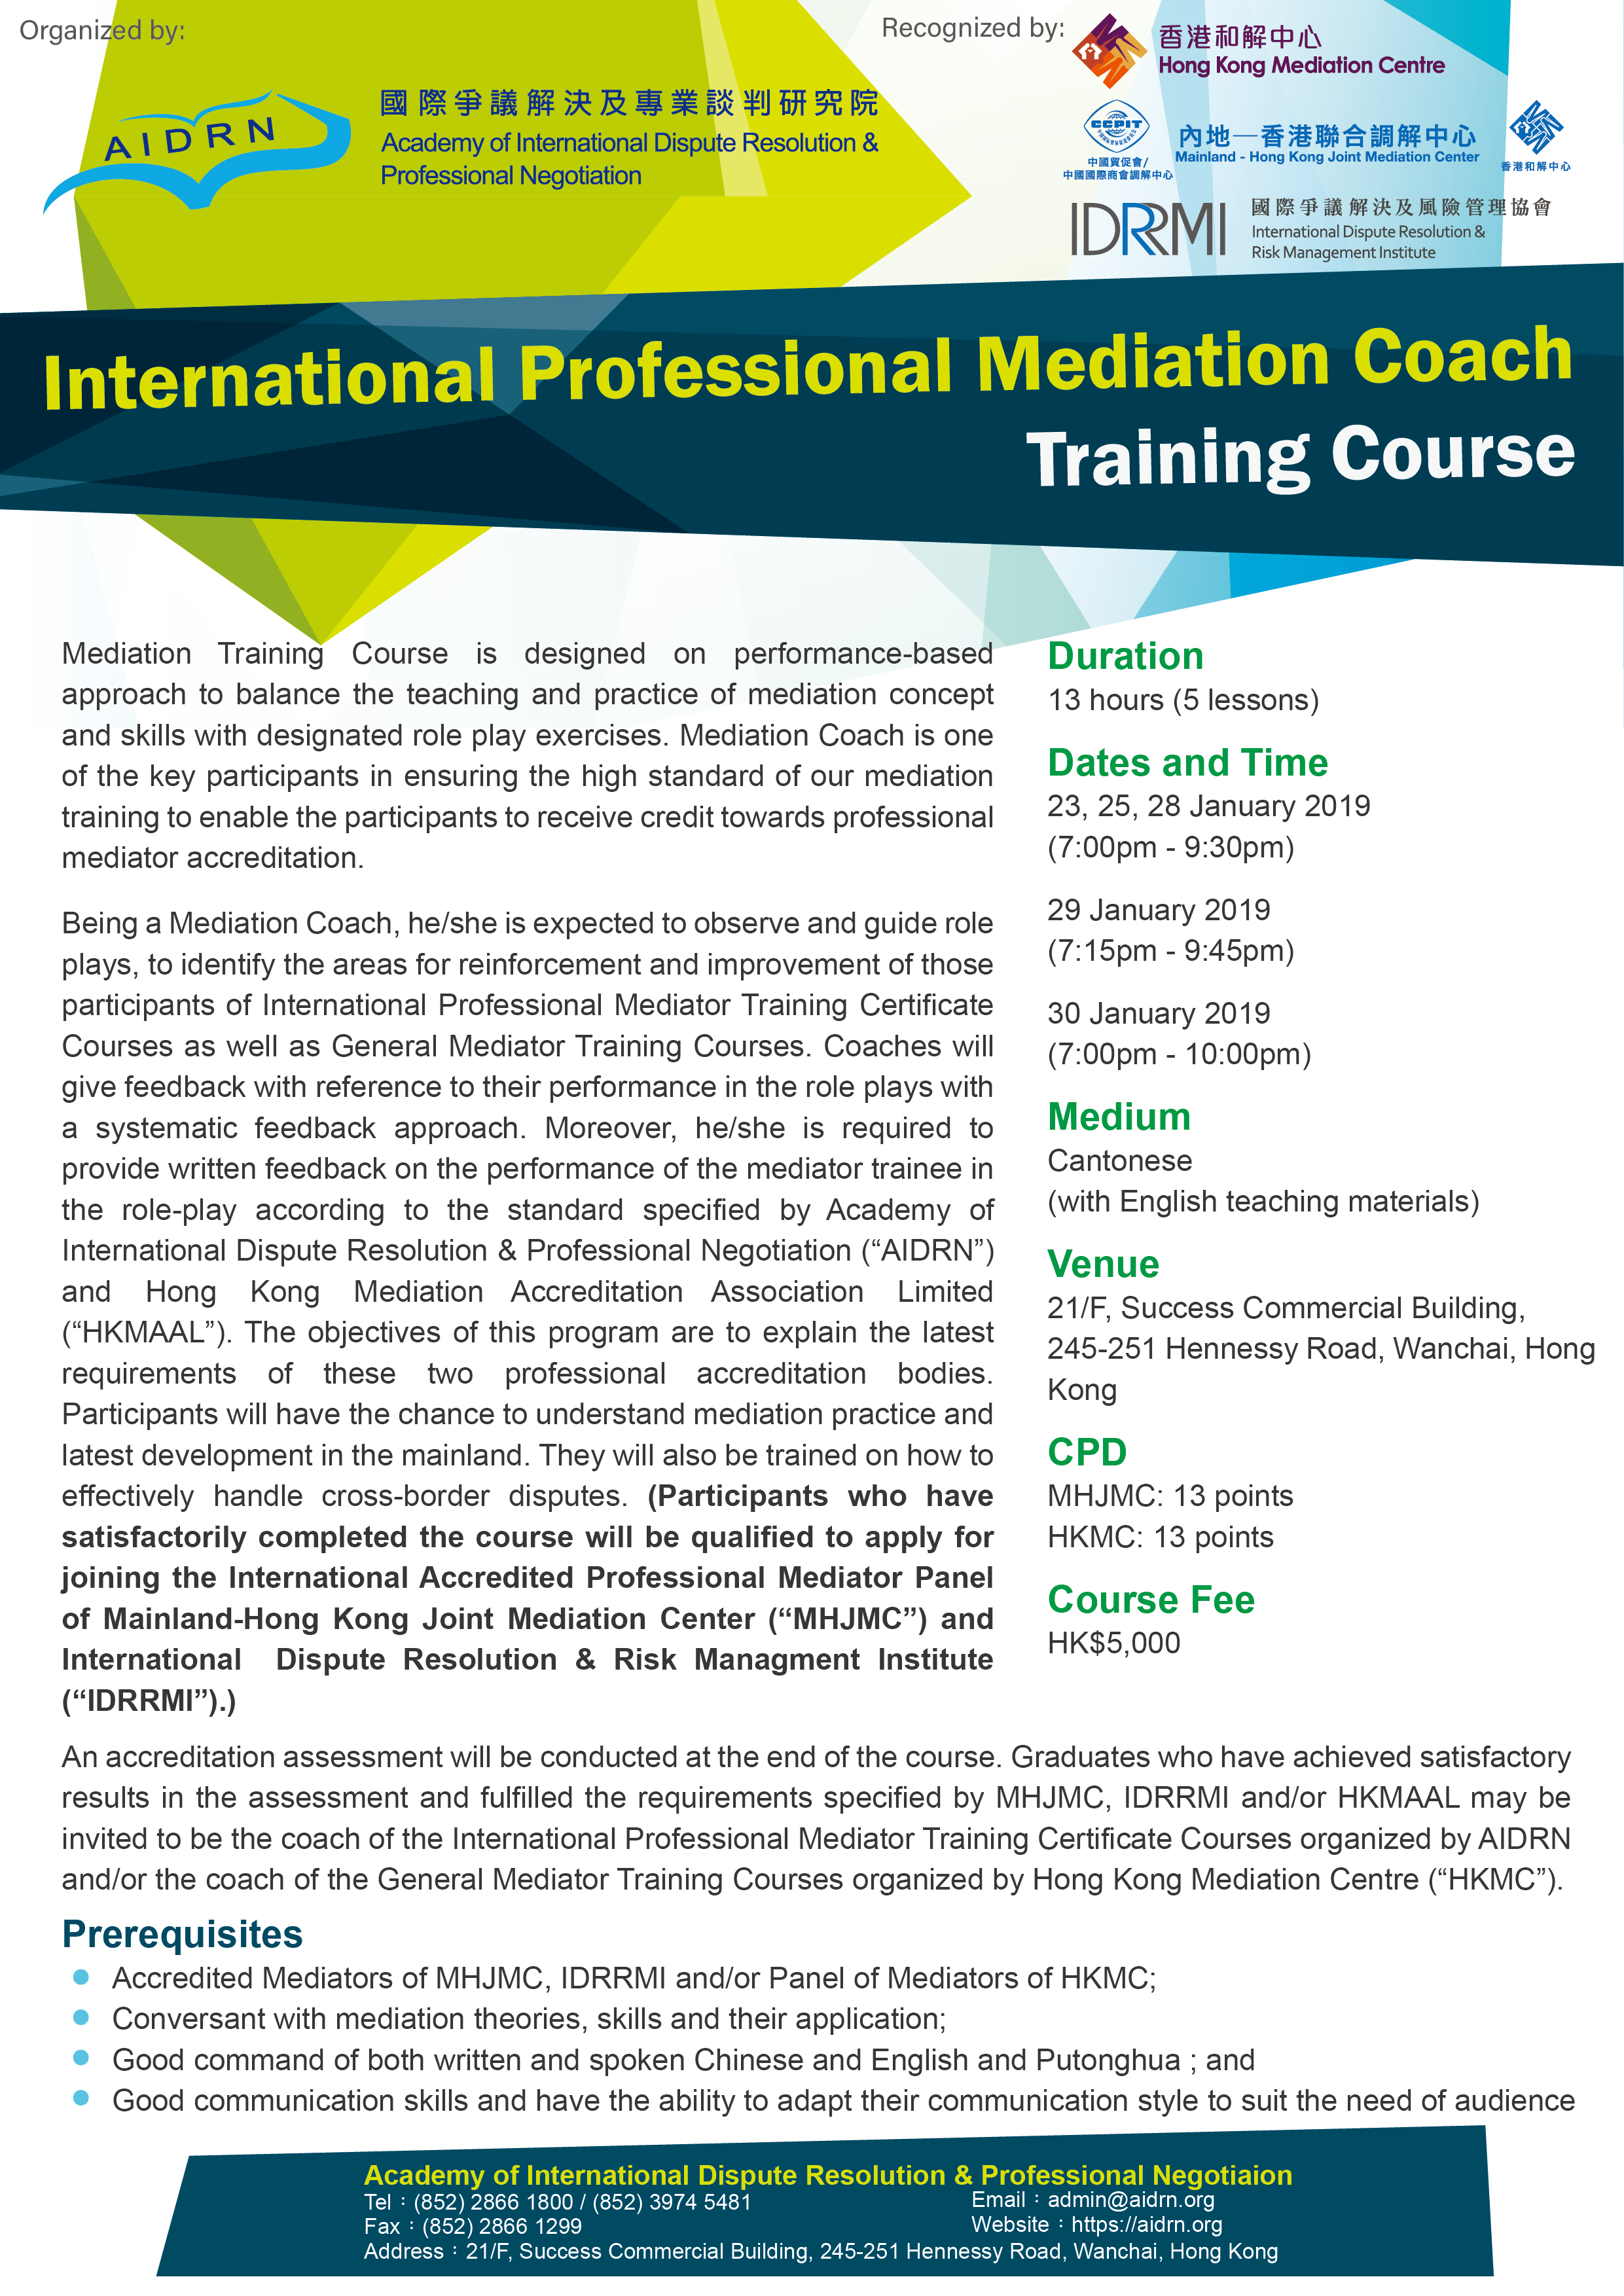 International Professional Mediation Coach Training Course_Jan 2019-01